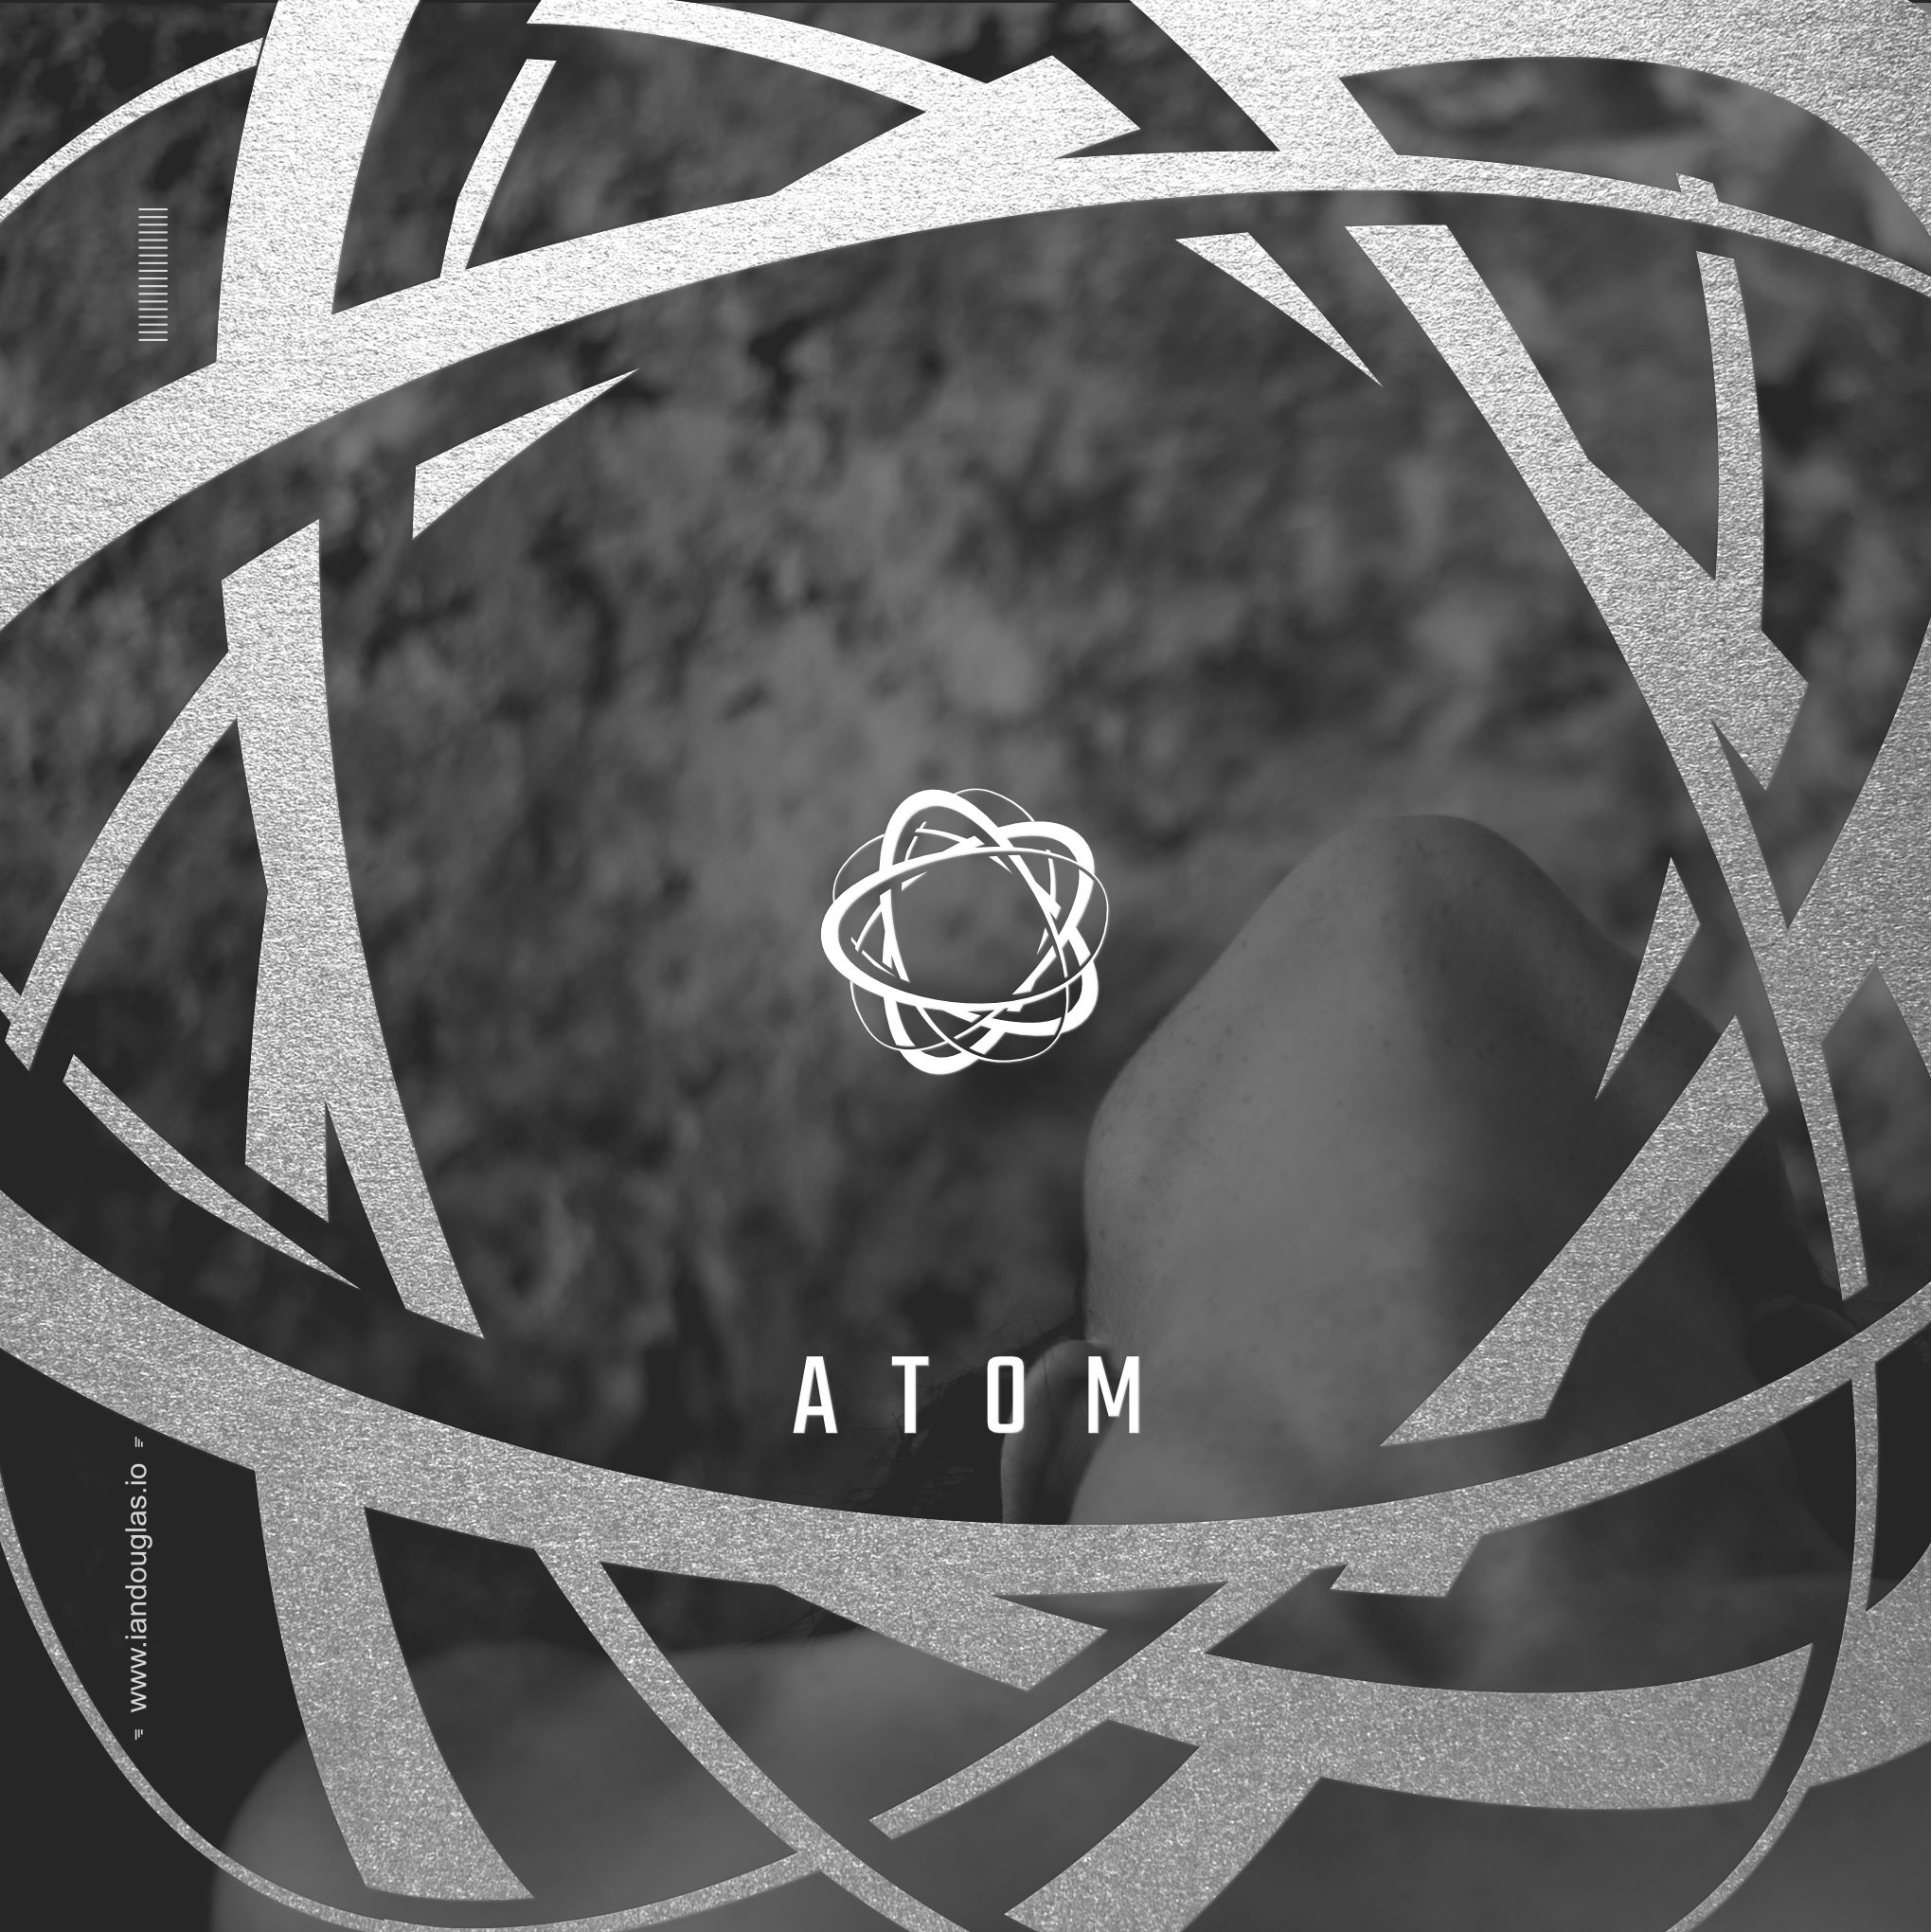 Atoms and Electricity with revived Tesla inspired Tech.